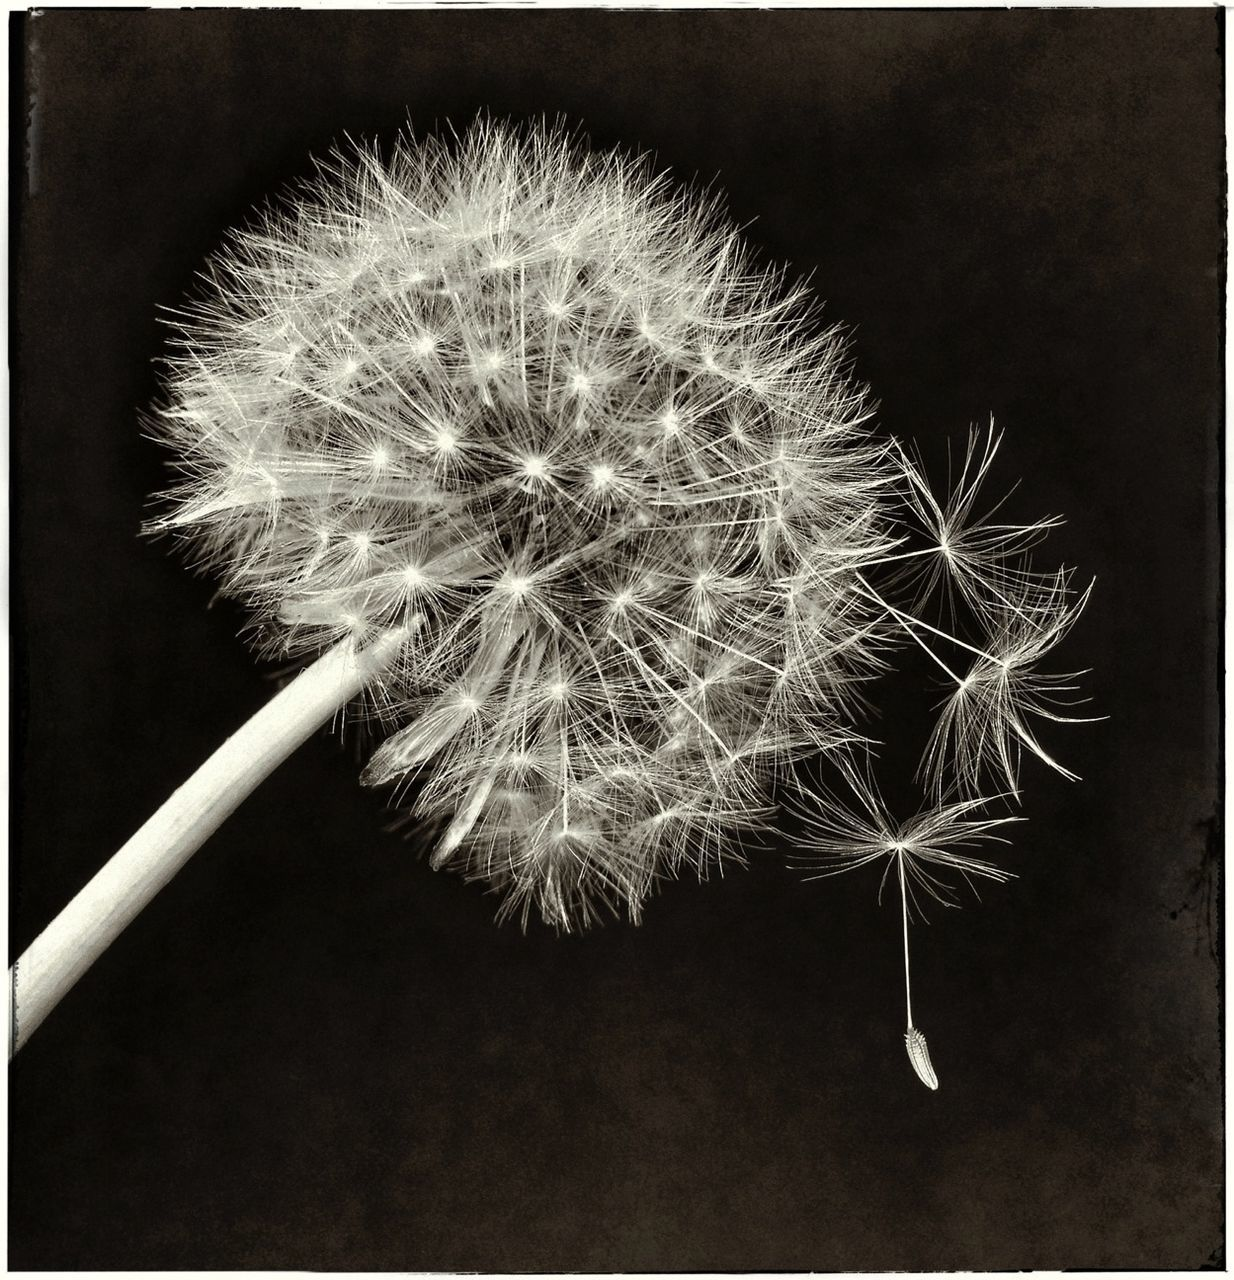 flower, dandelion, fragility, freshness, close-up, flower head, no people, plant, nature, beauty in nature, black background, studio shot, night, outdoors